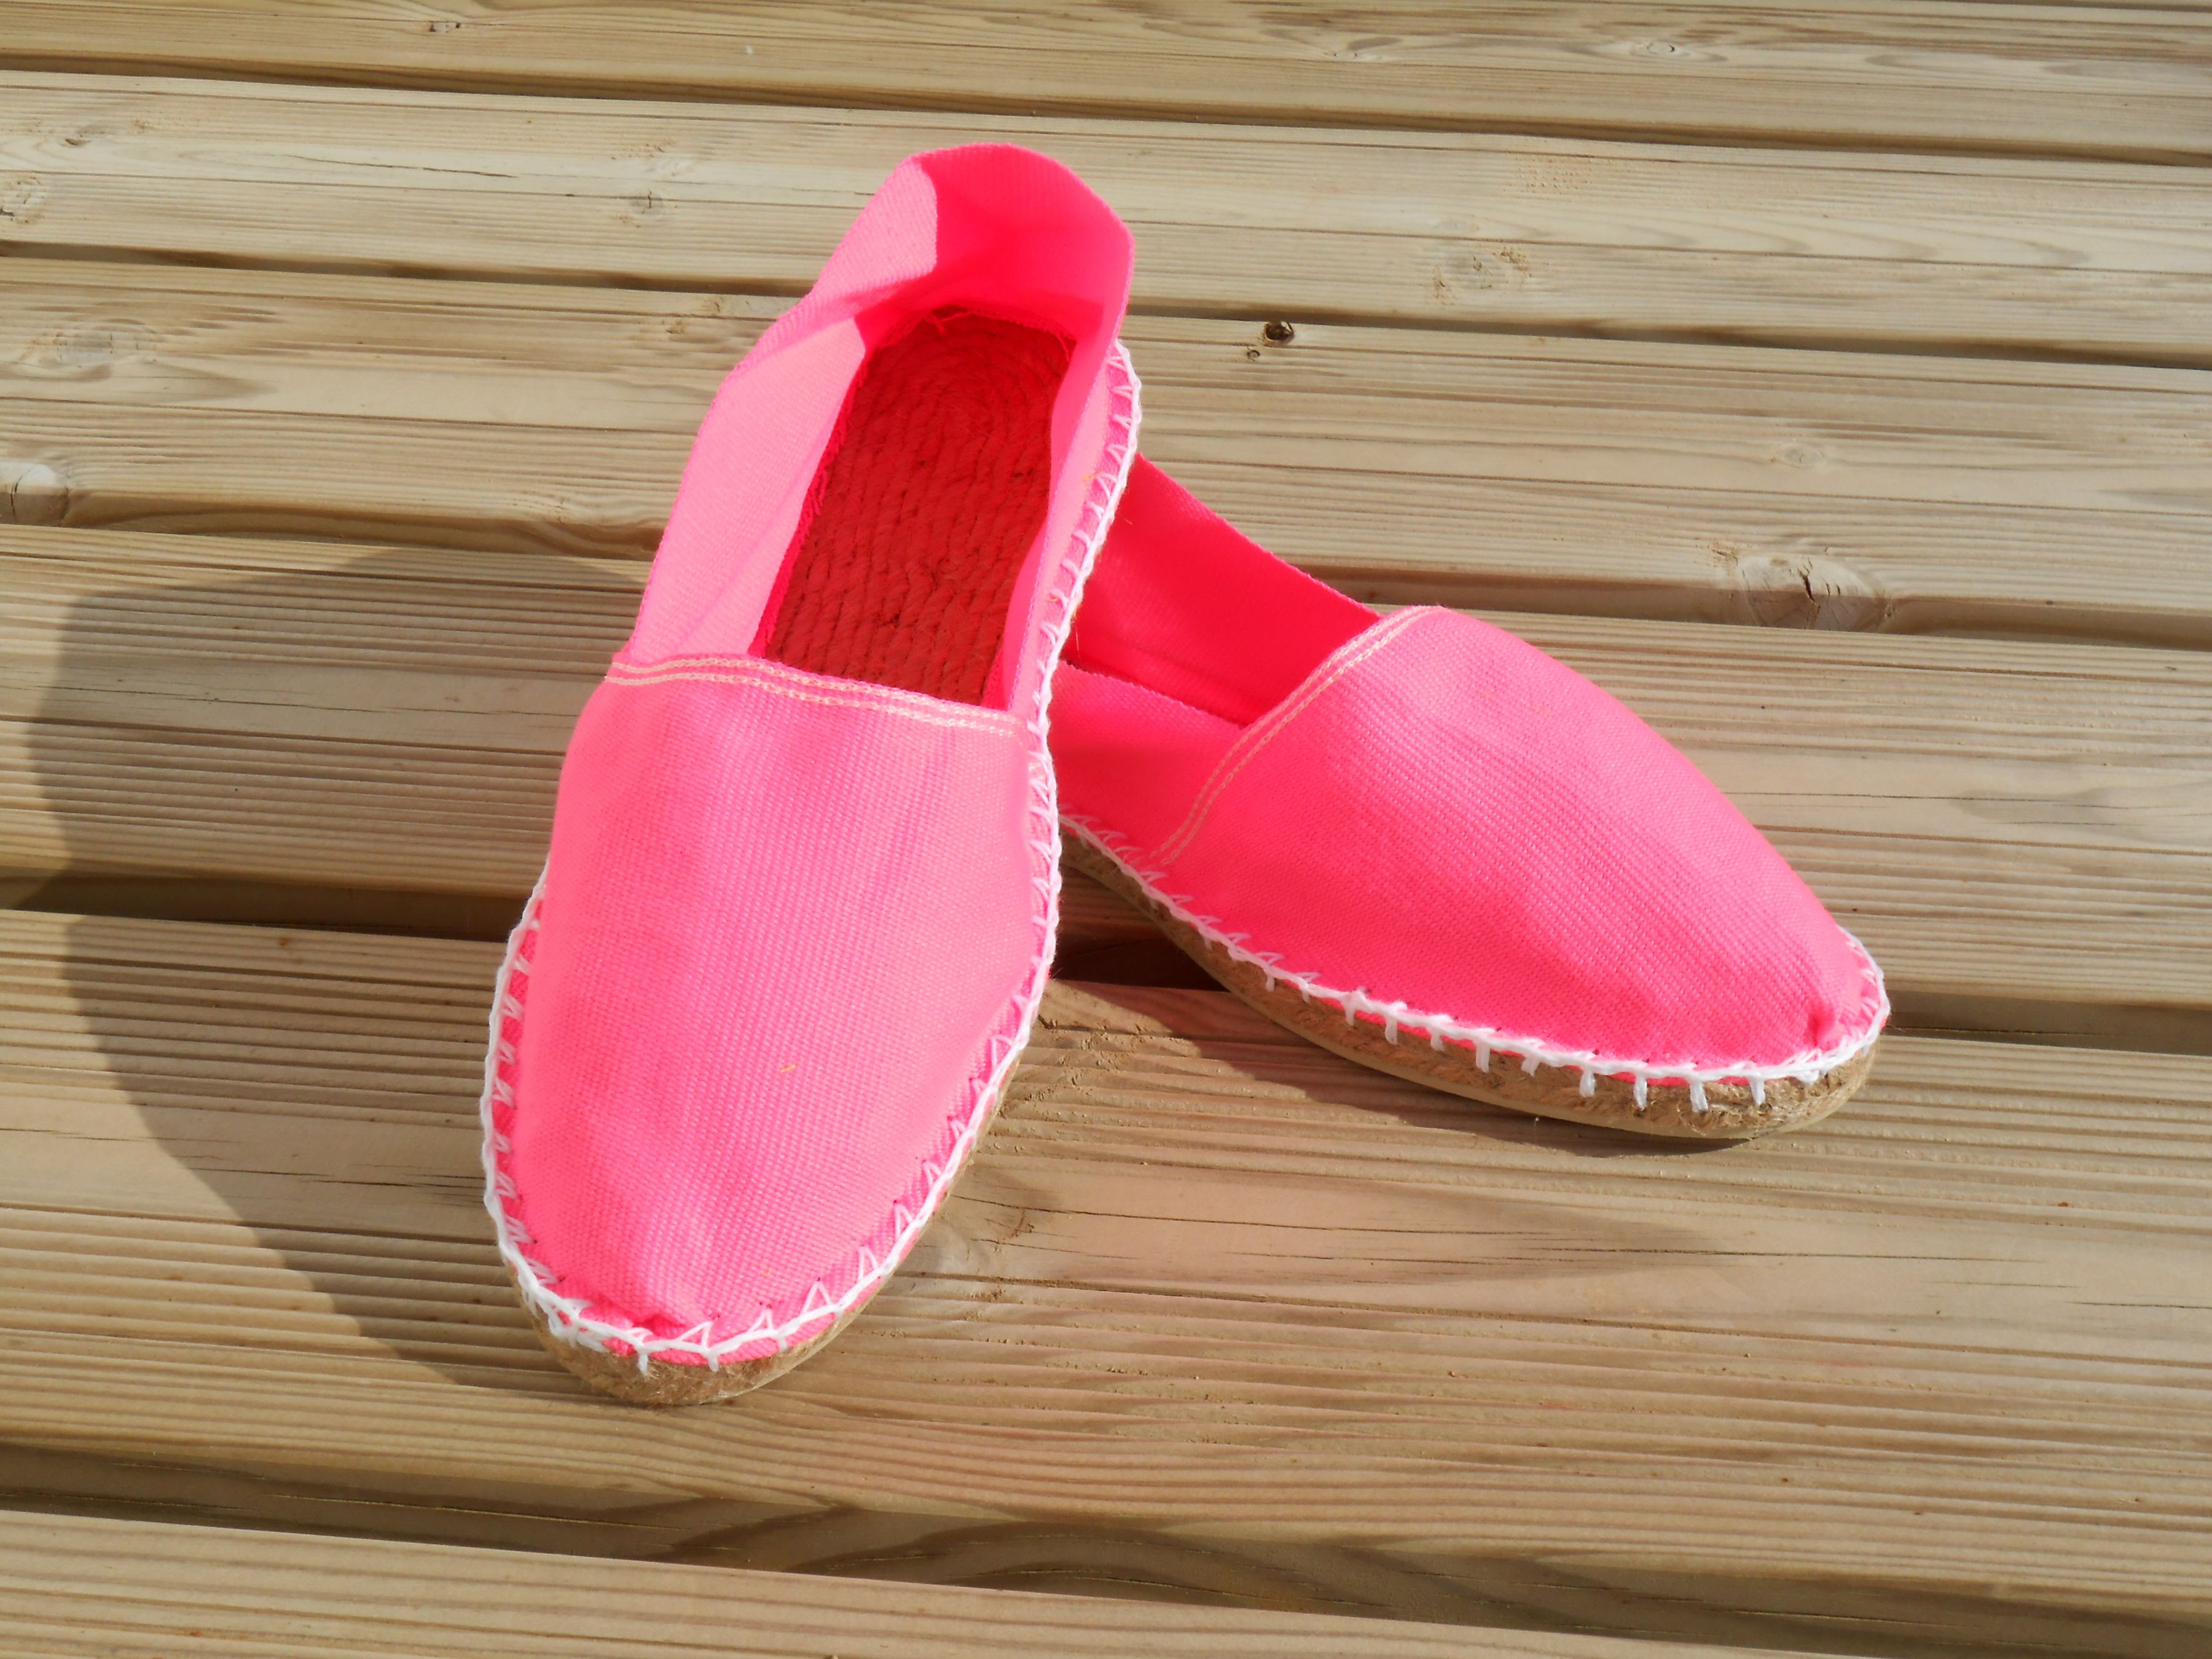 Espadrilles basques rose fluo taille 44